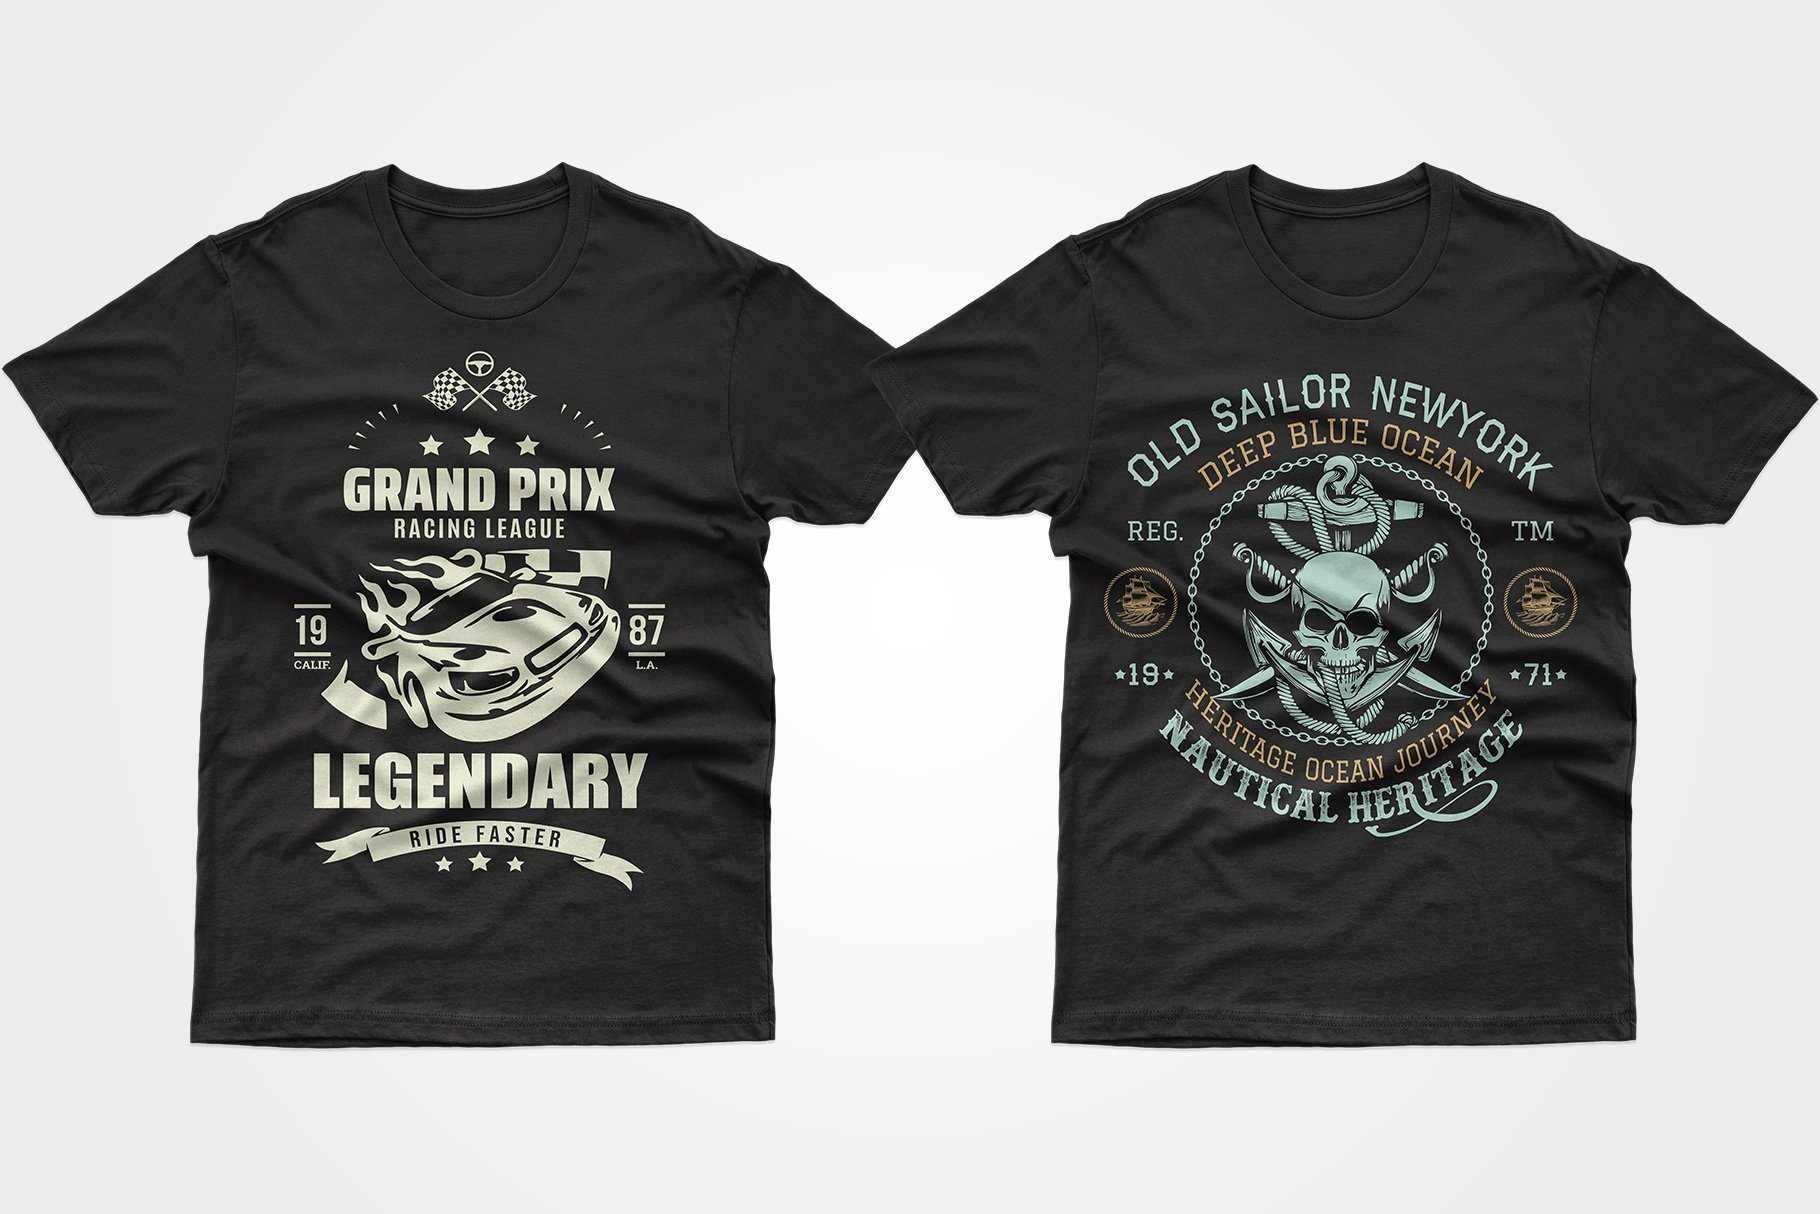 Two black T-shirts - one with a racing car, the other with a skull, rope and anchor.